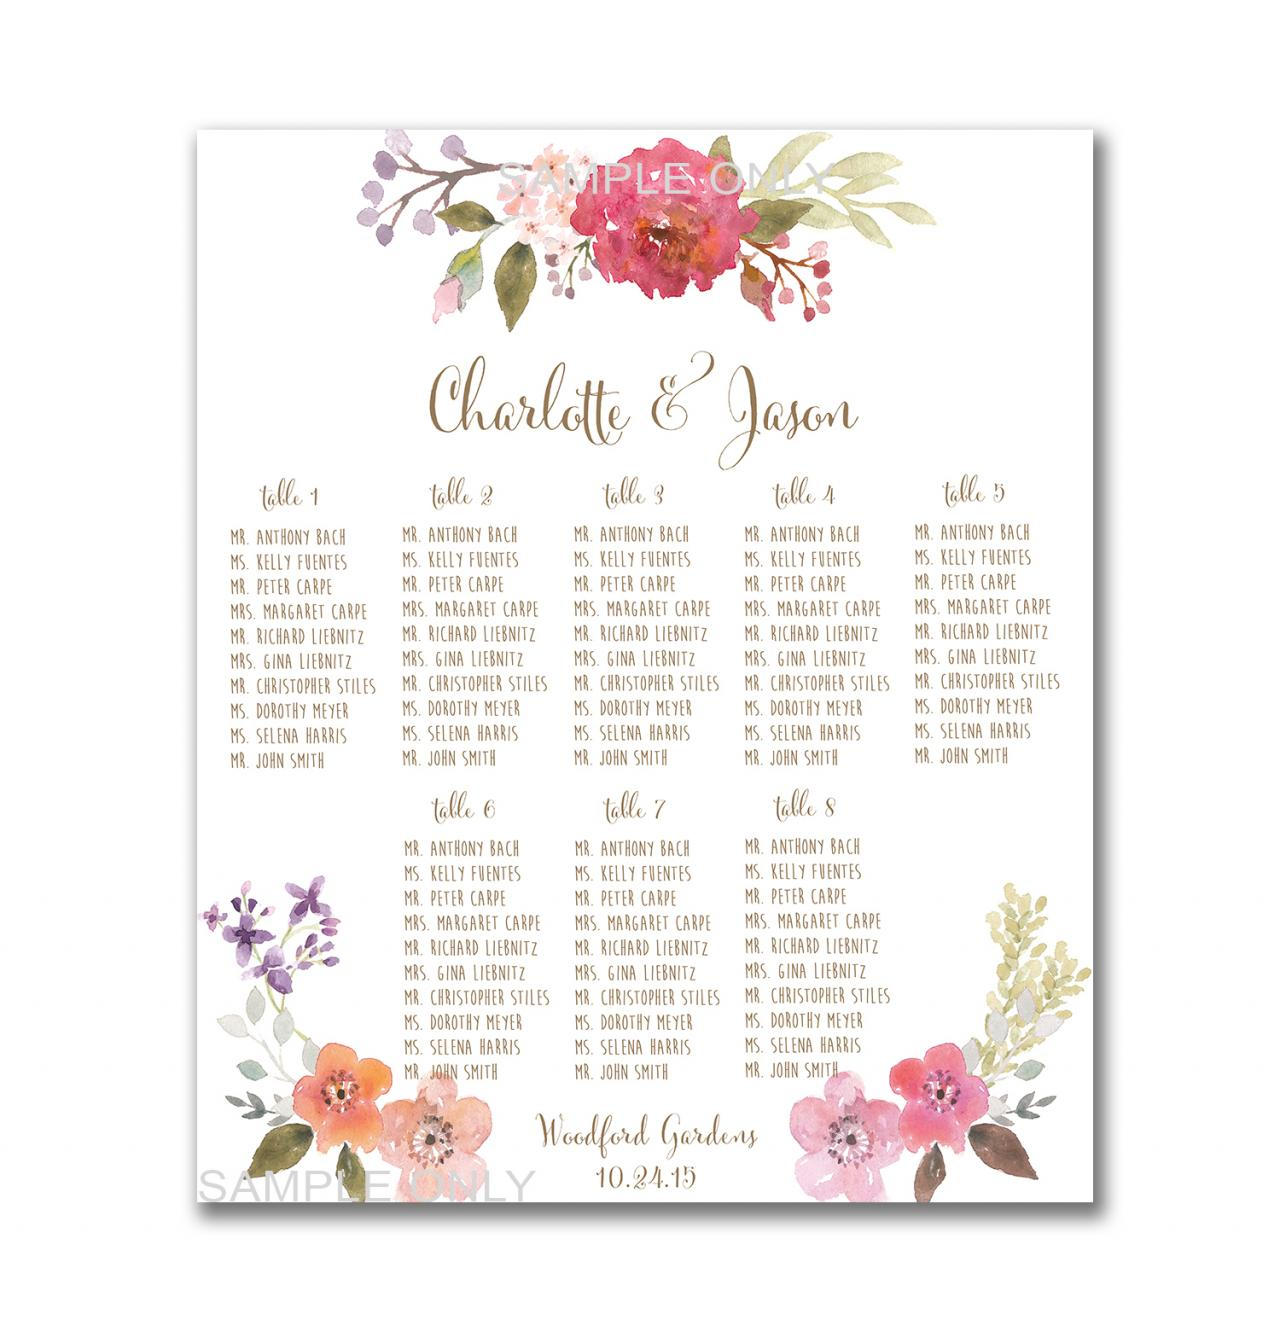 Wedding Table Seating Chart PRINTABLE 50 130 Guests – Wedding Seating Chart Template Free Printable